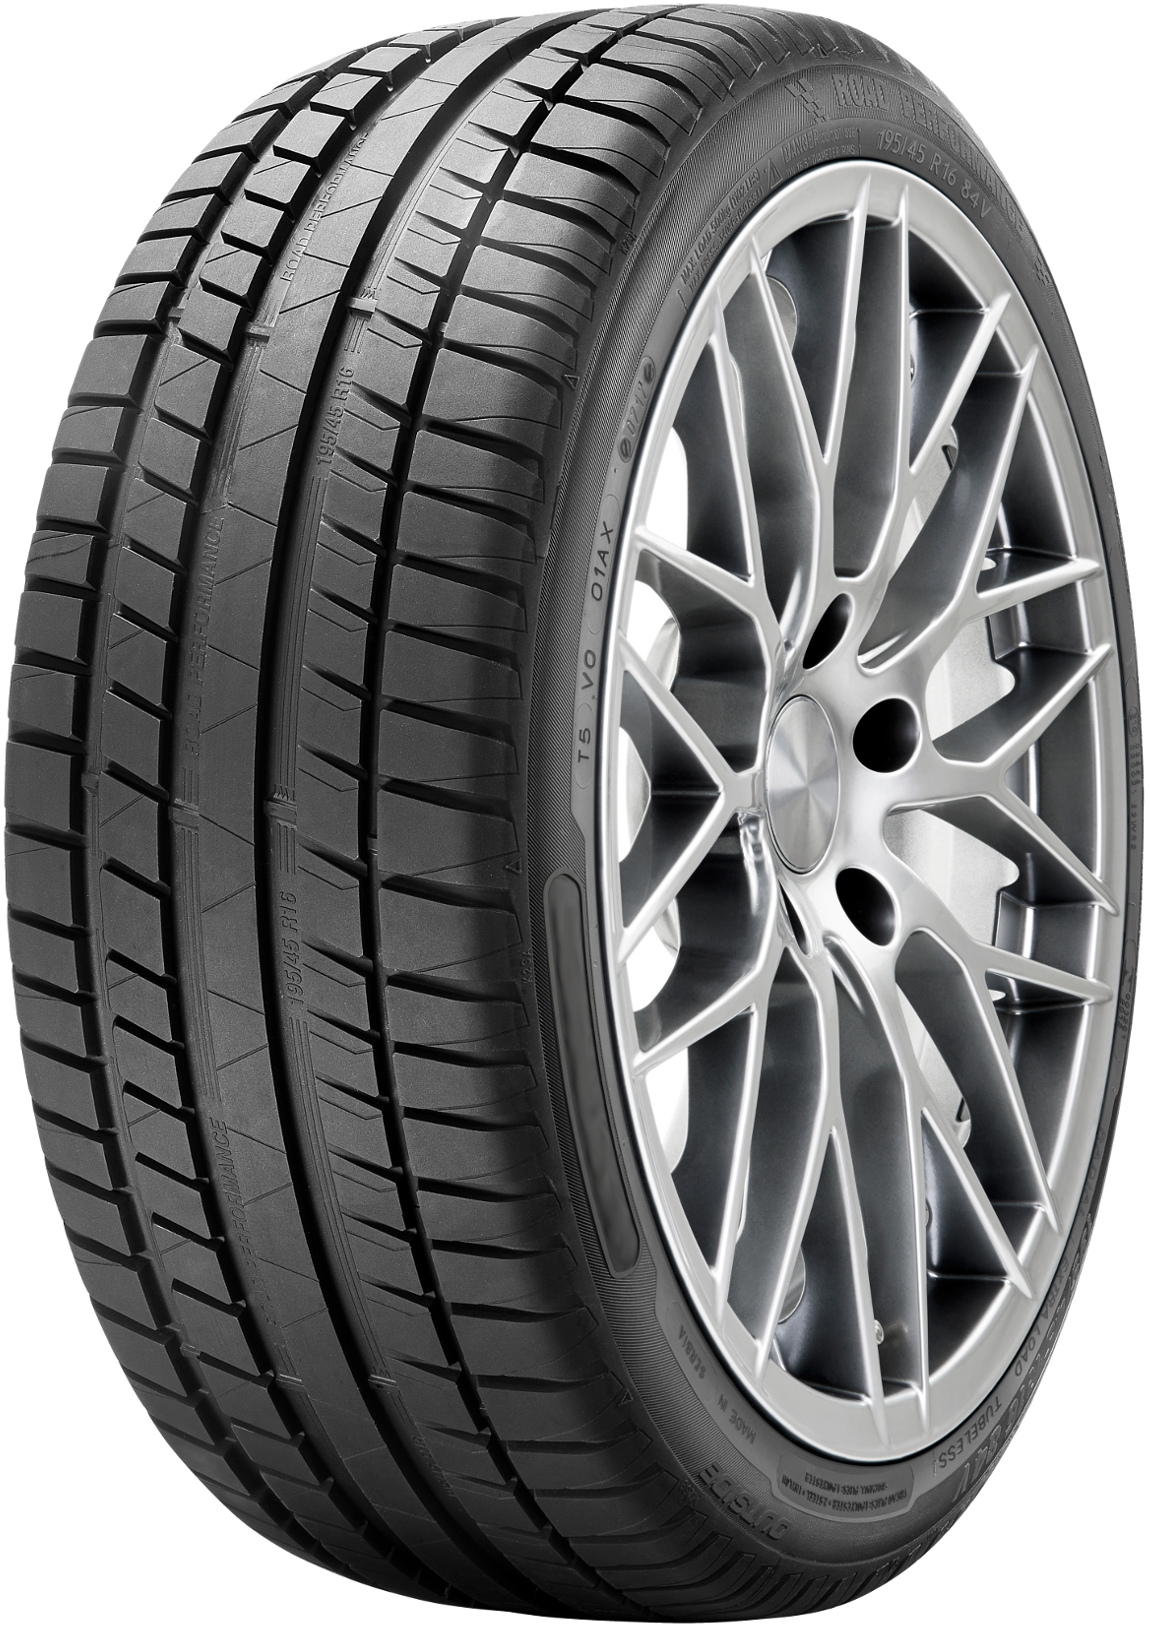 Kormoran Road Performance 215/60 R 16 99H letní